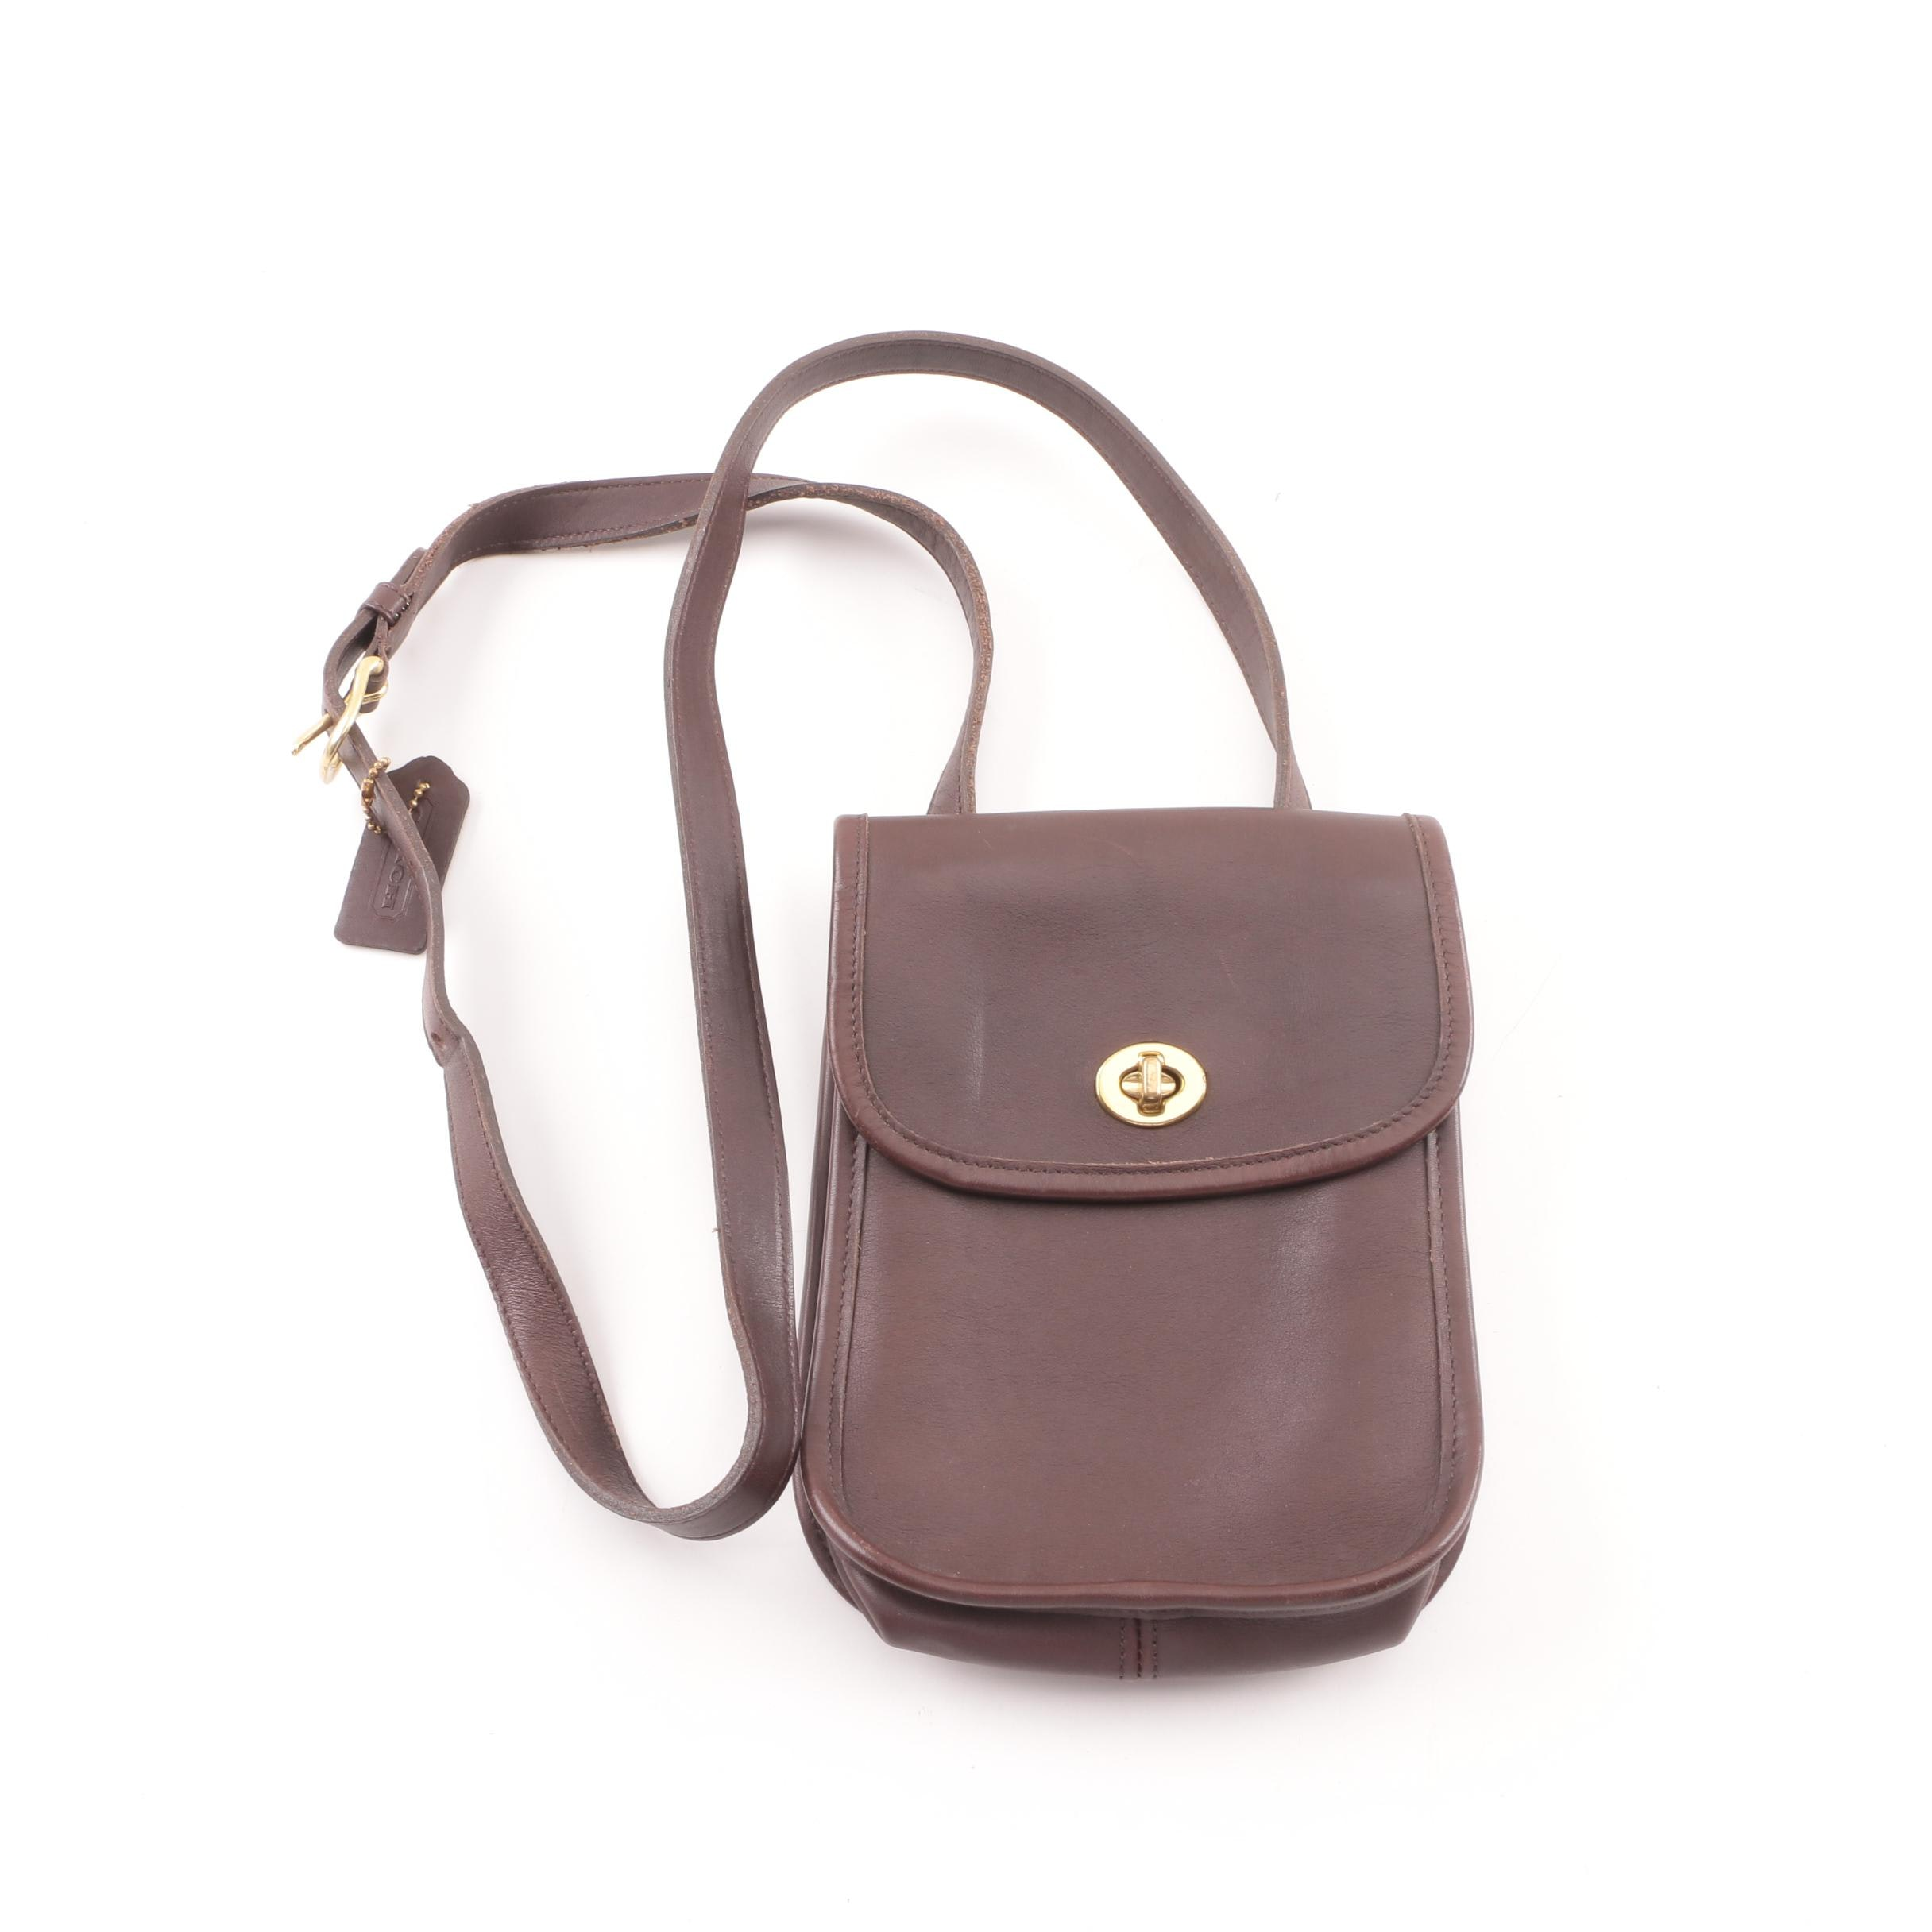 1997 Vintage Coach Scooter Small Side Pack Brown Leather Crossbody Bag